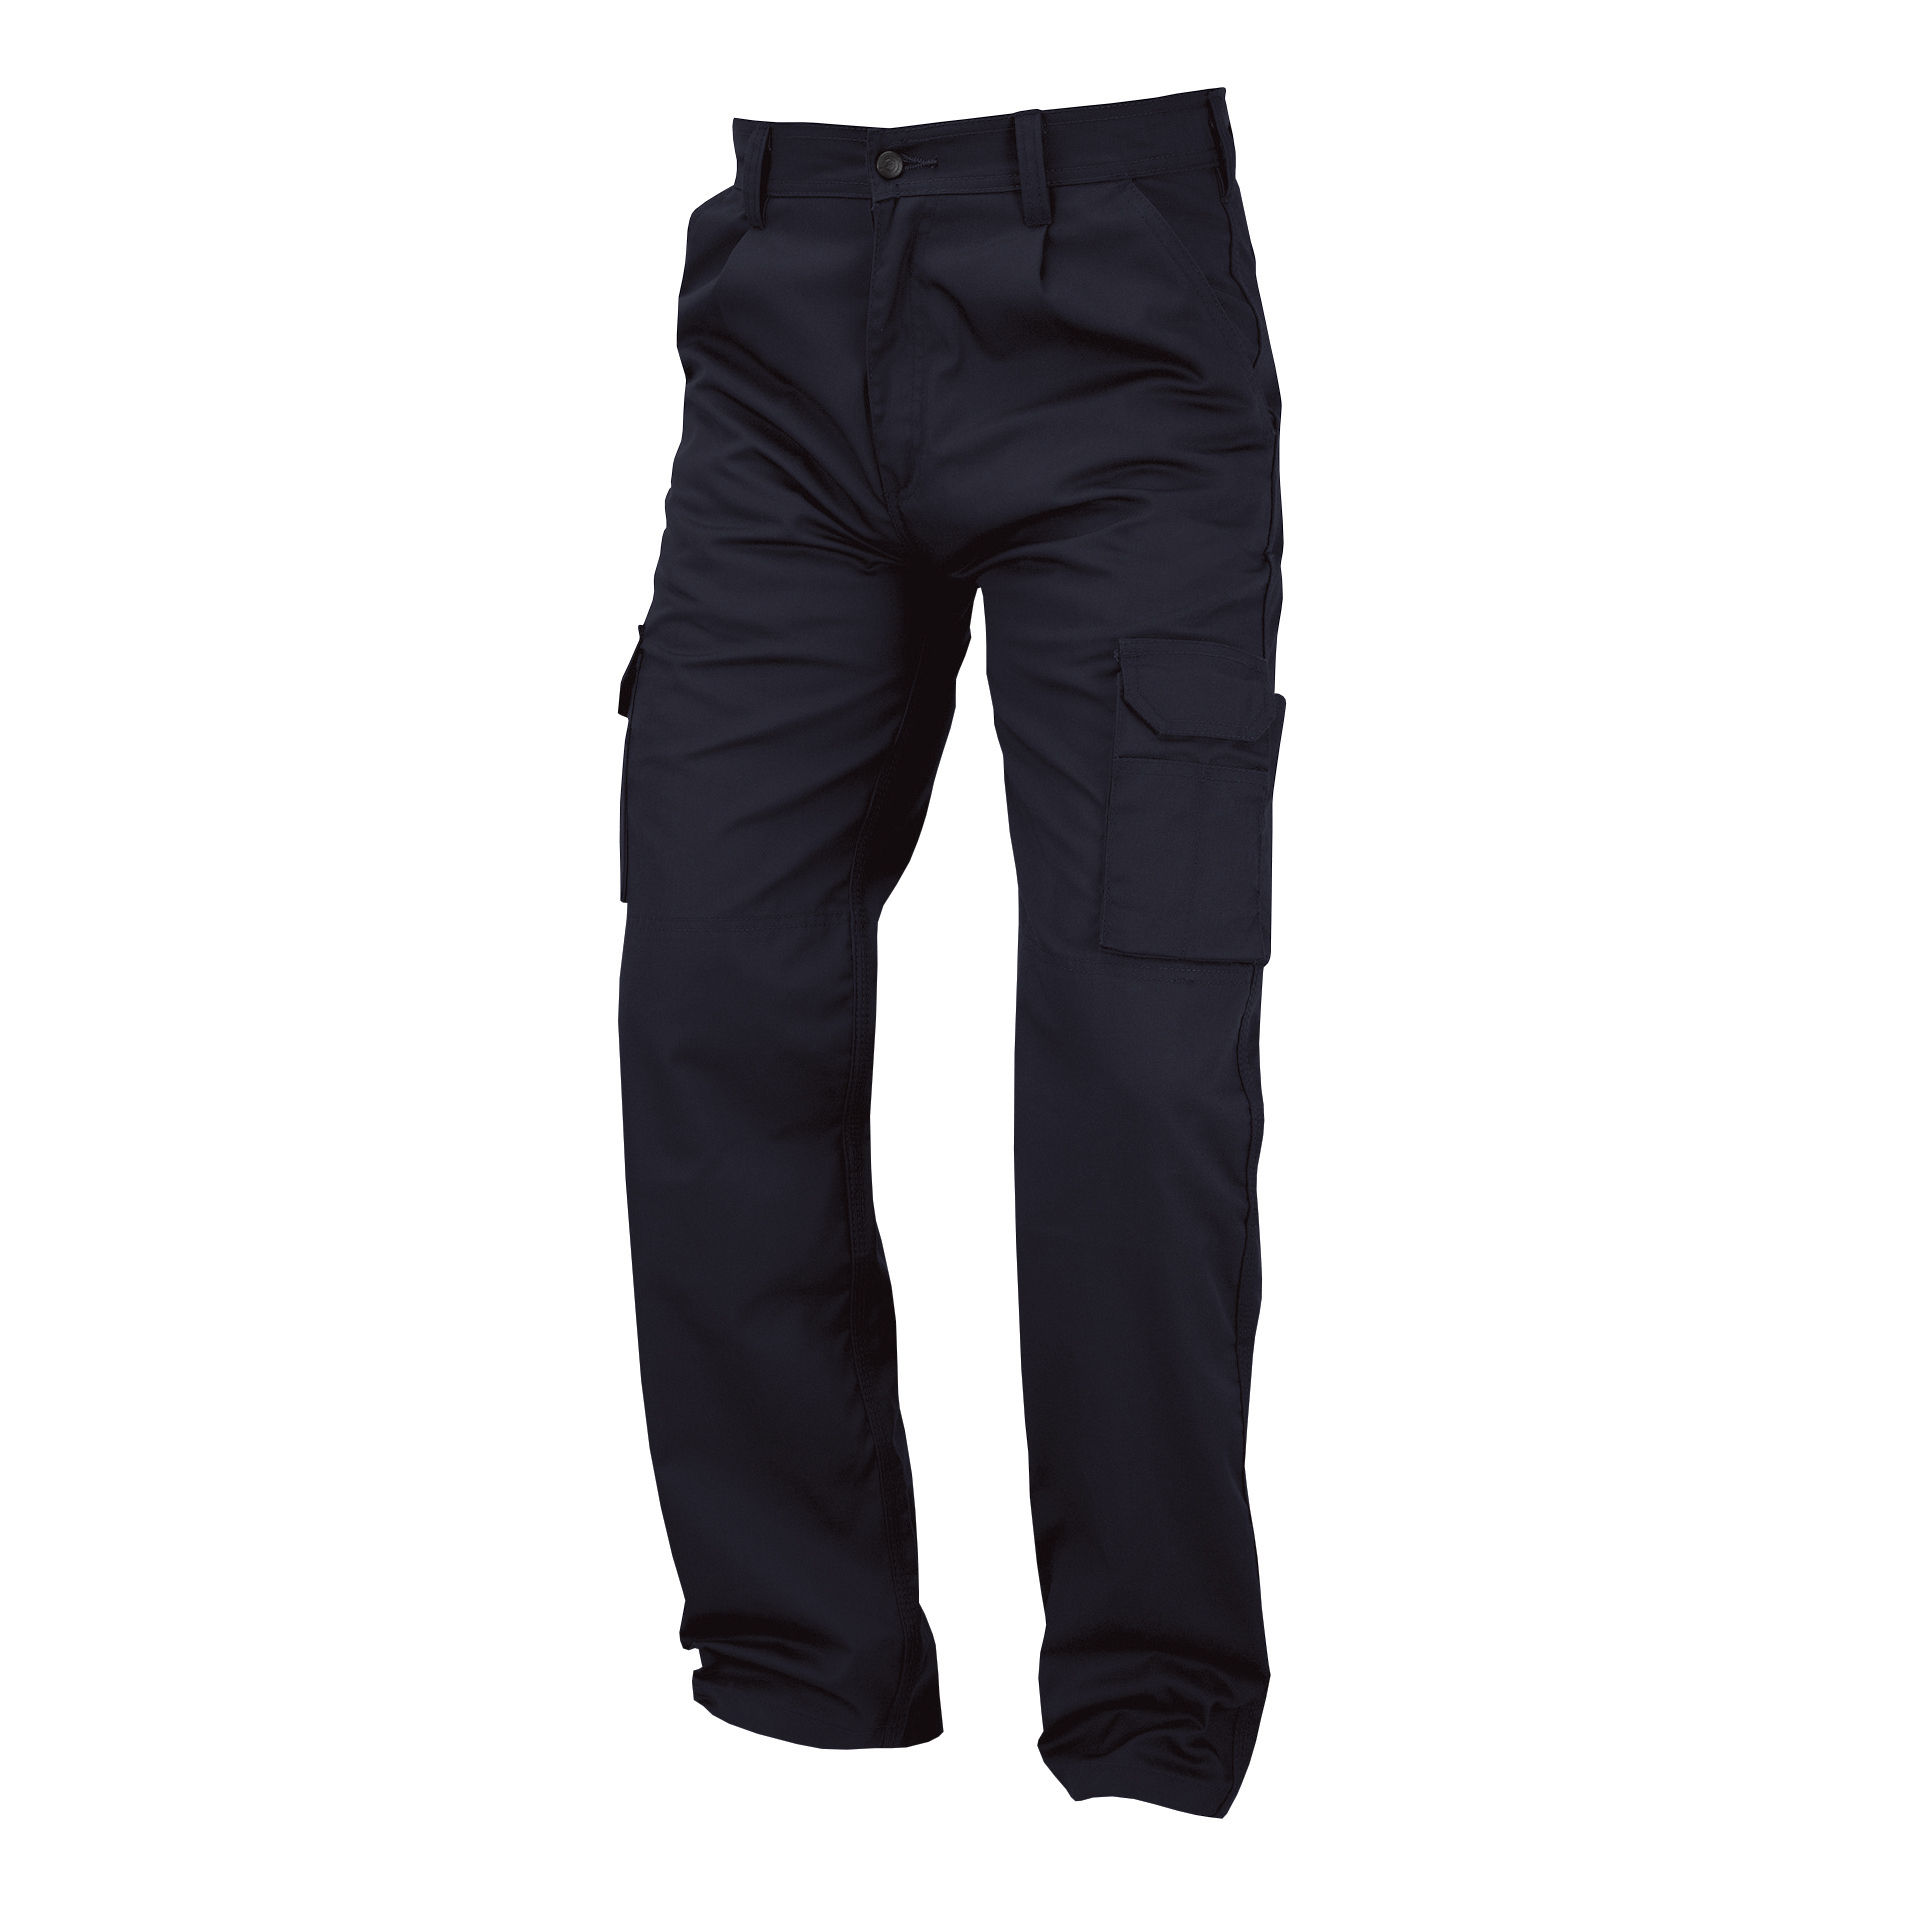 Business Kneepad Combat Trouser Multi-functional Waist 48in Leg 32in Navy